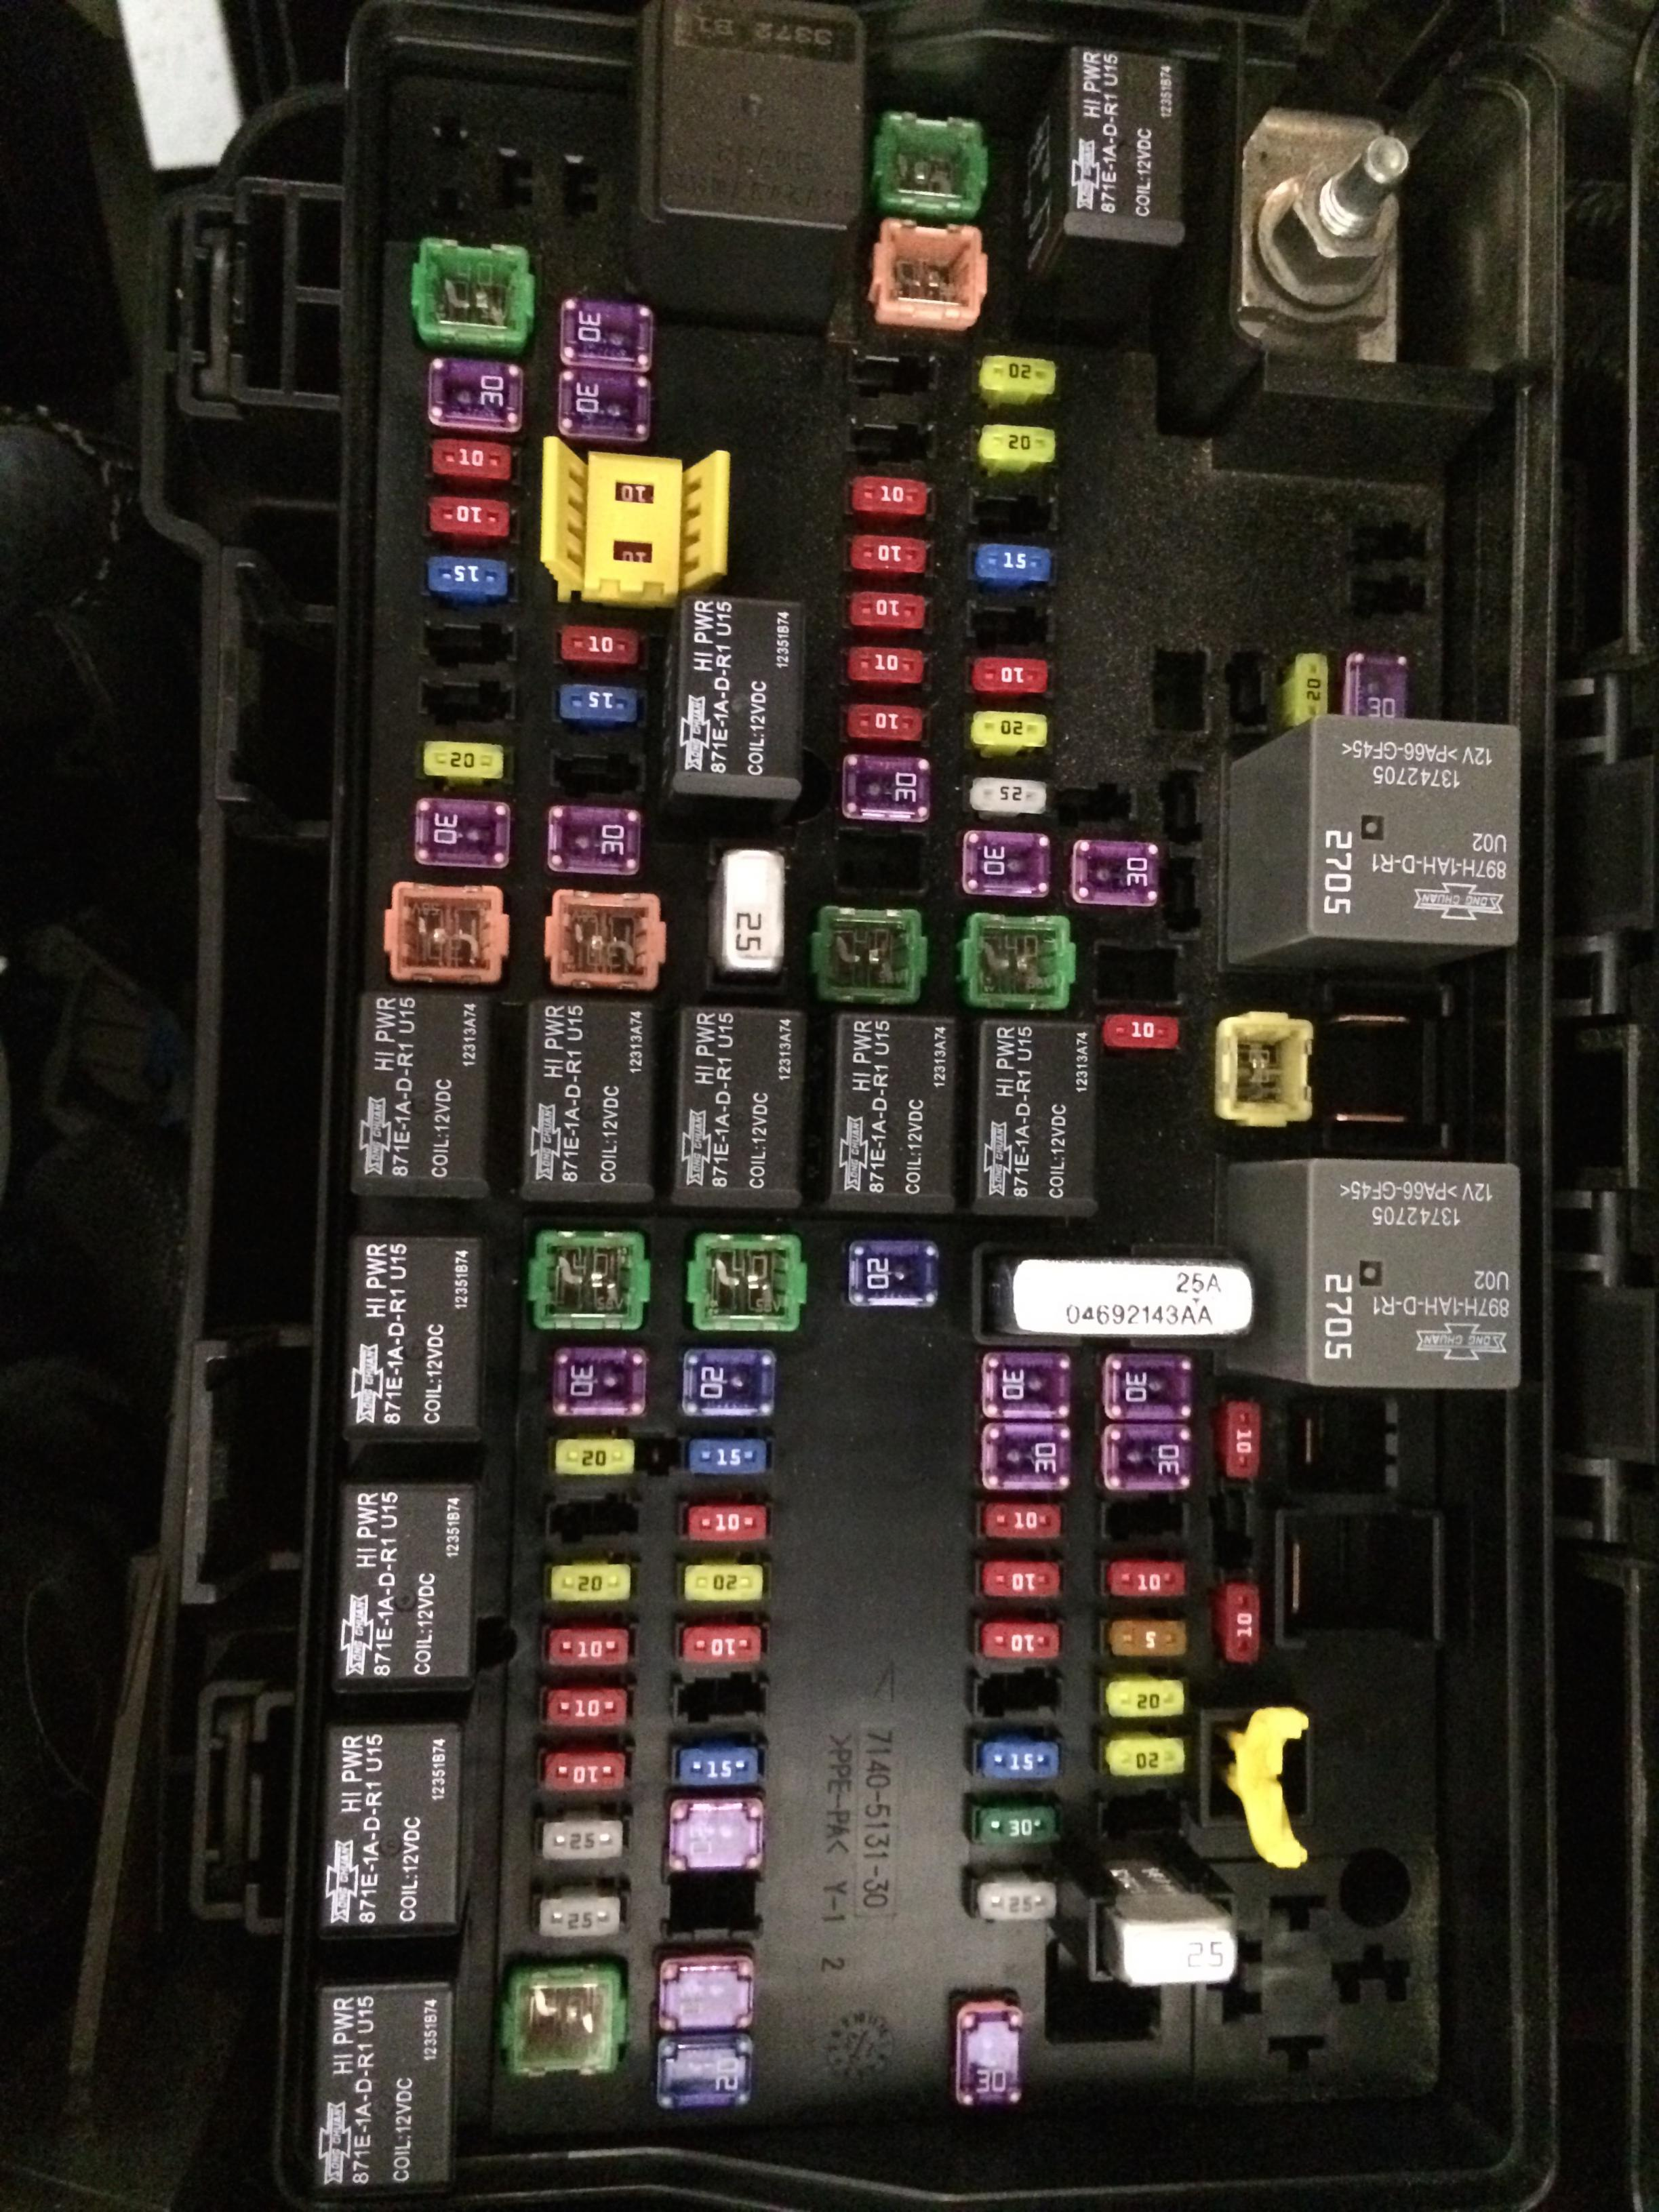 2014 ram 3500 fuse box fuse layout 2013 slt 2500 diesel - dodge cummins diesel forum